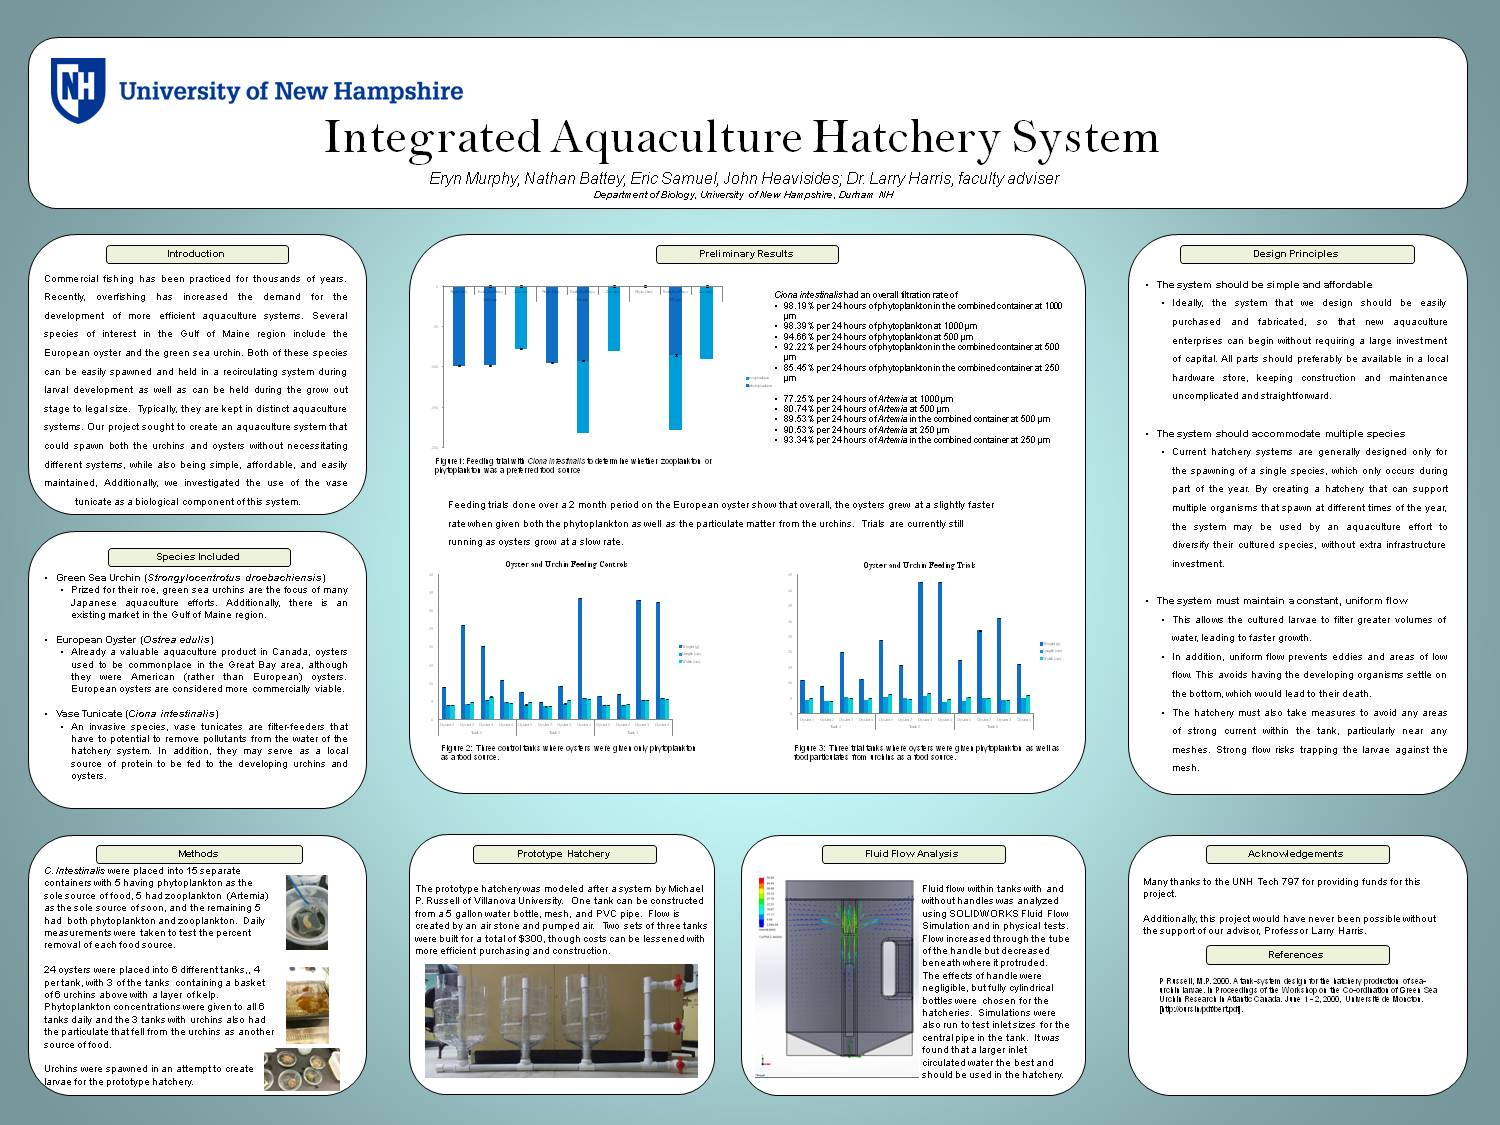 Integrated Aquaculture Hatchery System by jheavisides